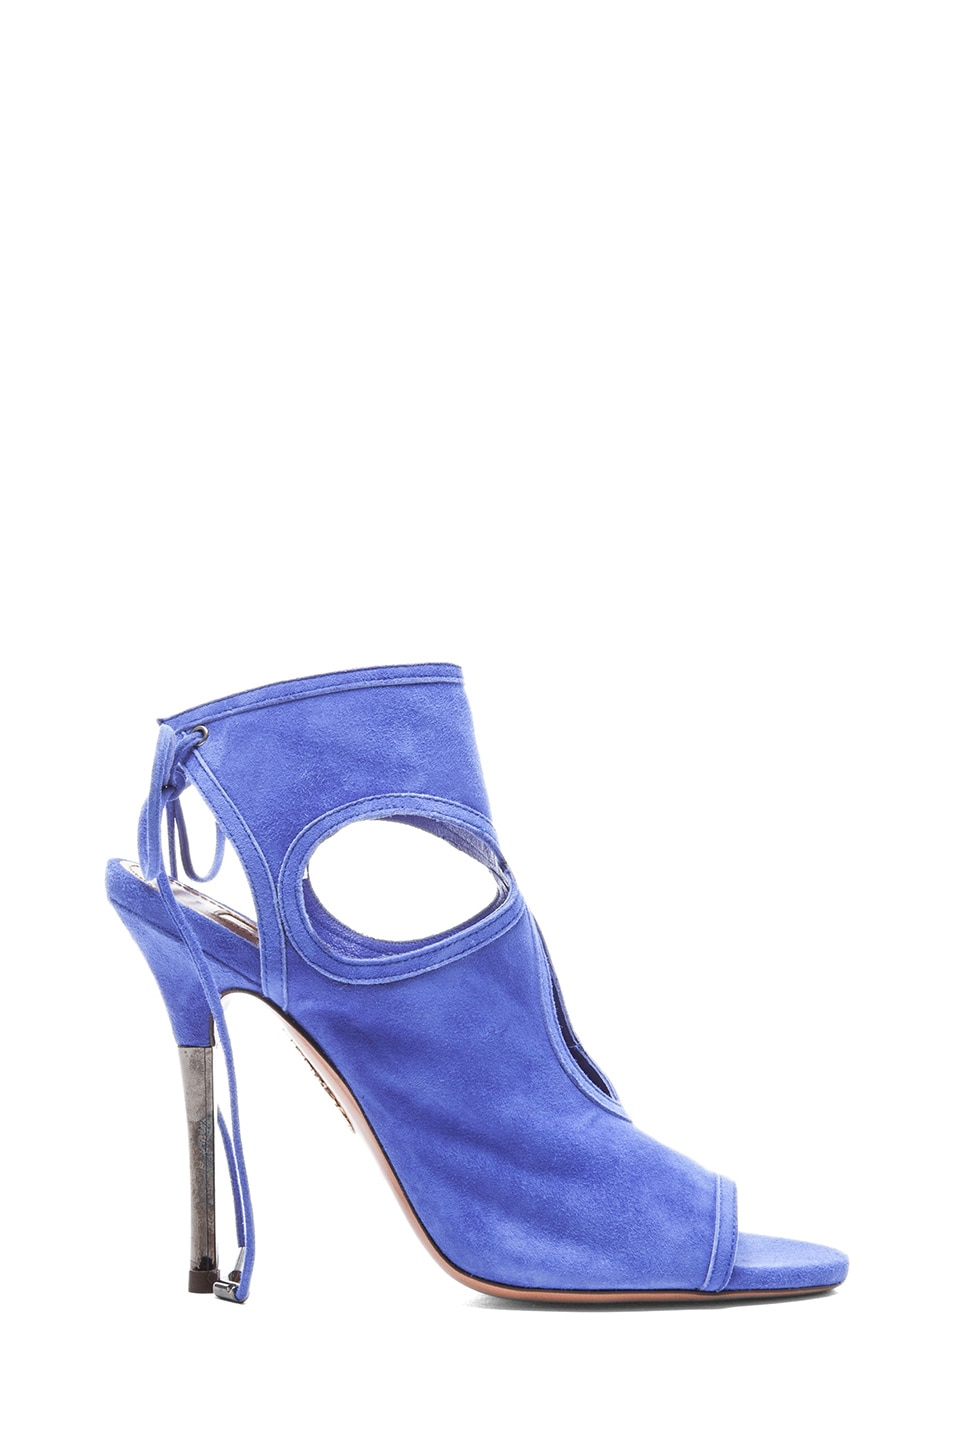 Image 1 of Aquazzura Sexy Thing Suede Sandals in Sapphire Violet